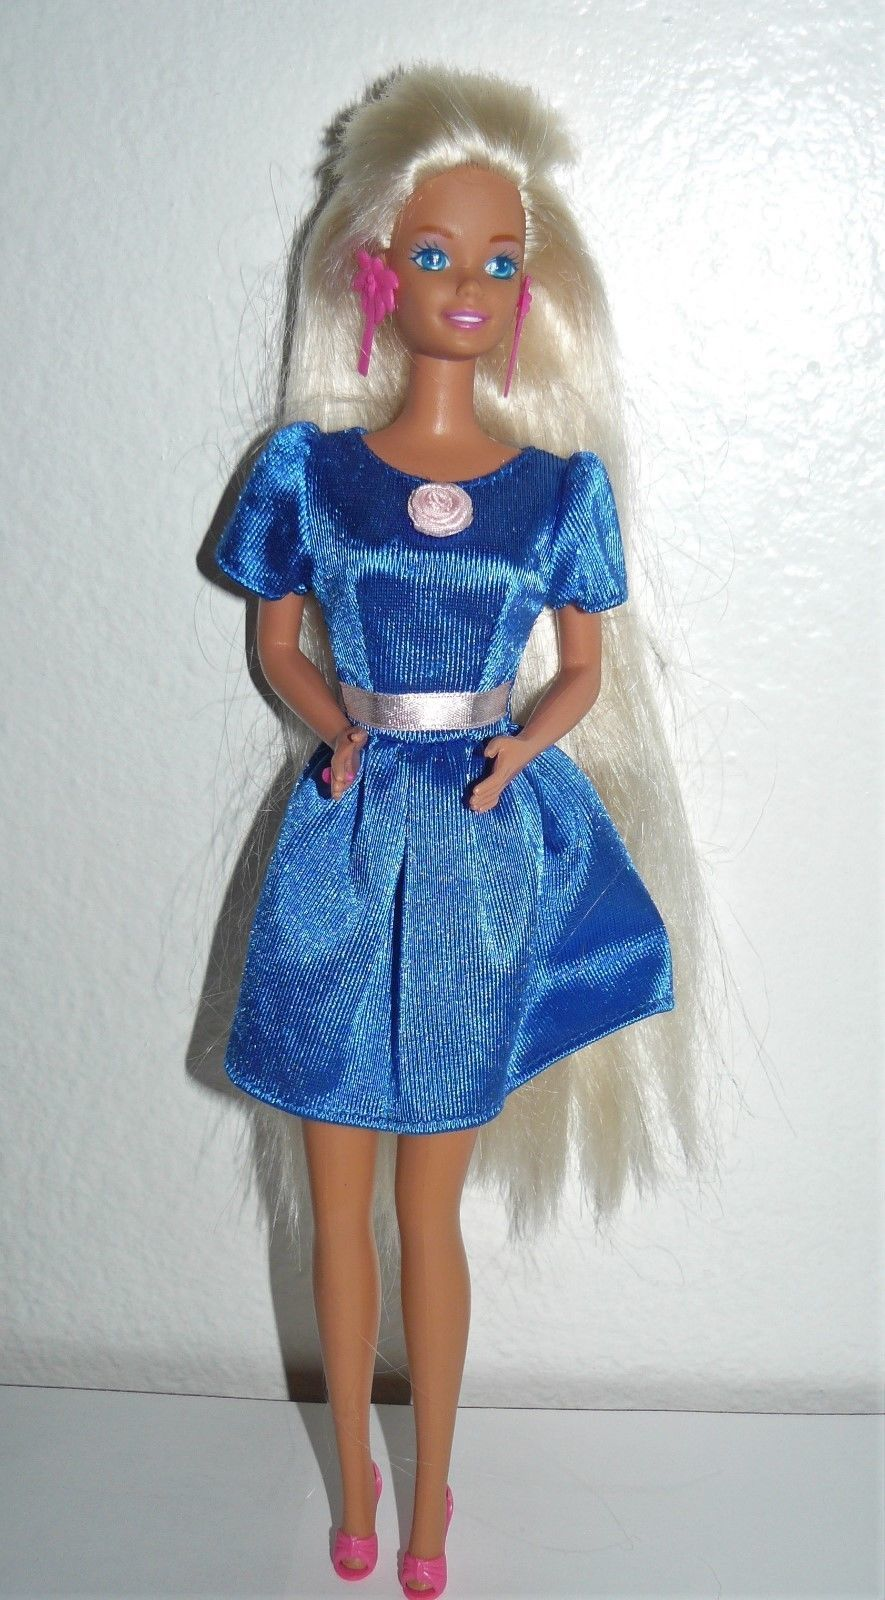 3f154c49665c S l1600. S l1600. Previous. Mattel 1970 s Twist  N Turn Barbie Doll blue  satin dress pink earrings   shoes